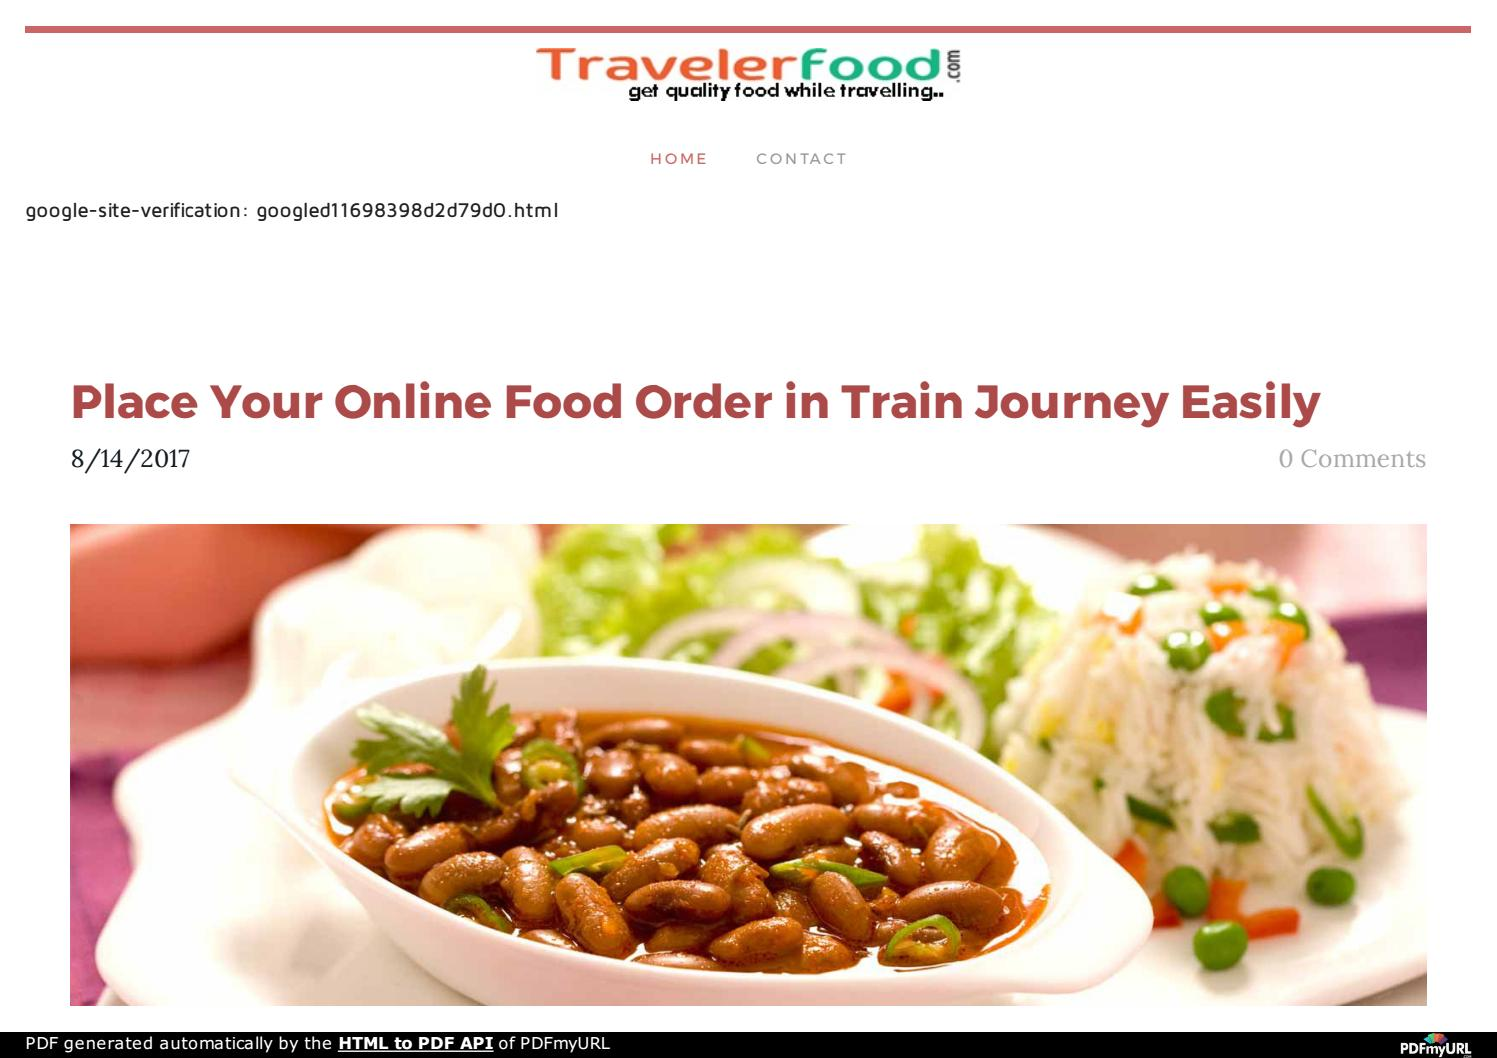 Place Your Online Food Order in Train Journey Easily